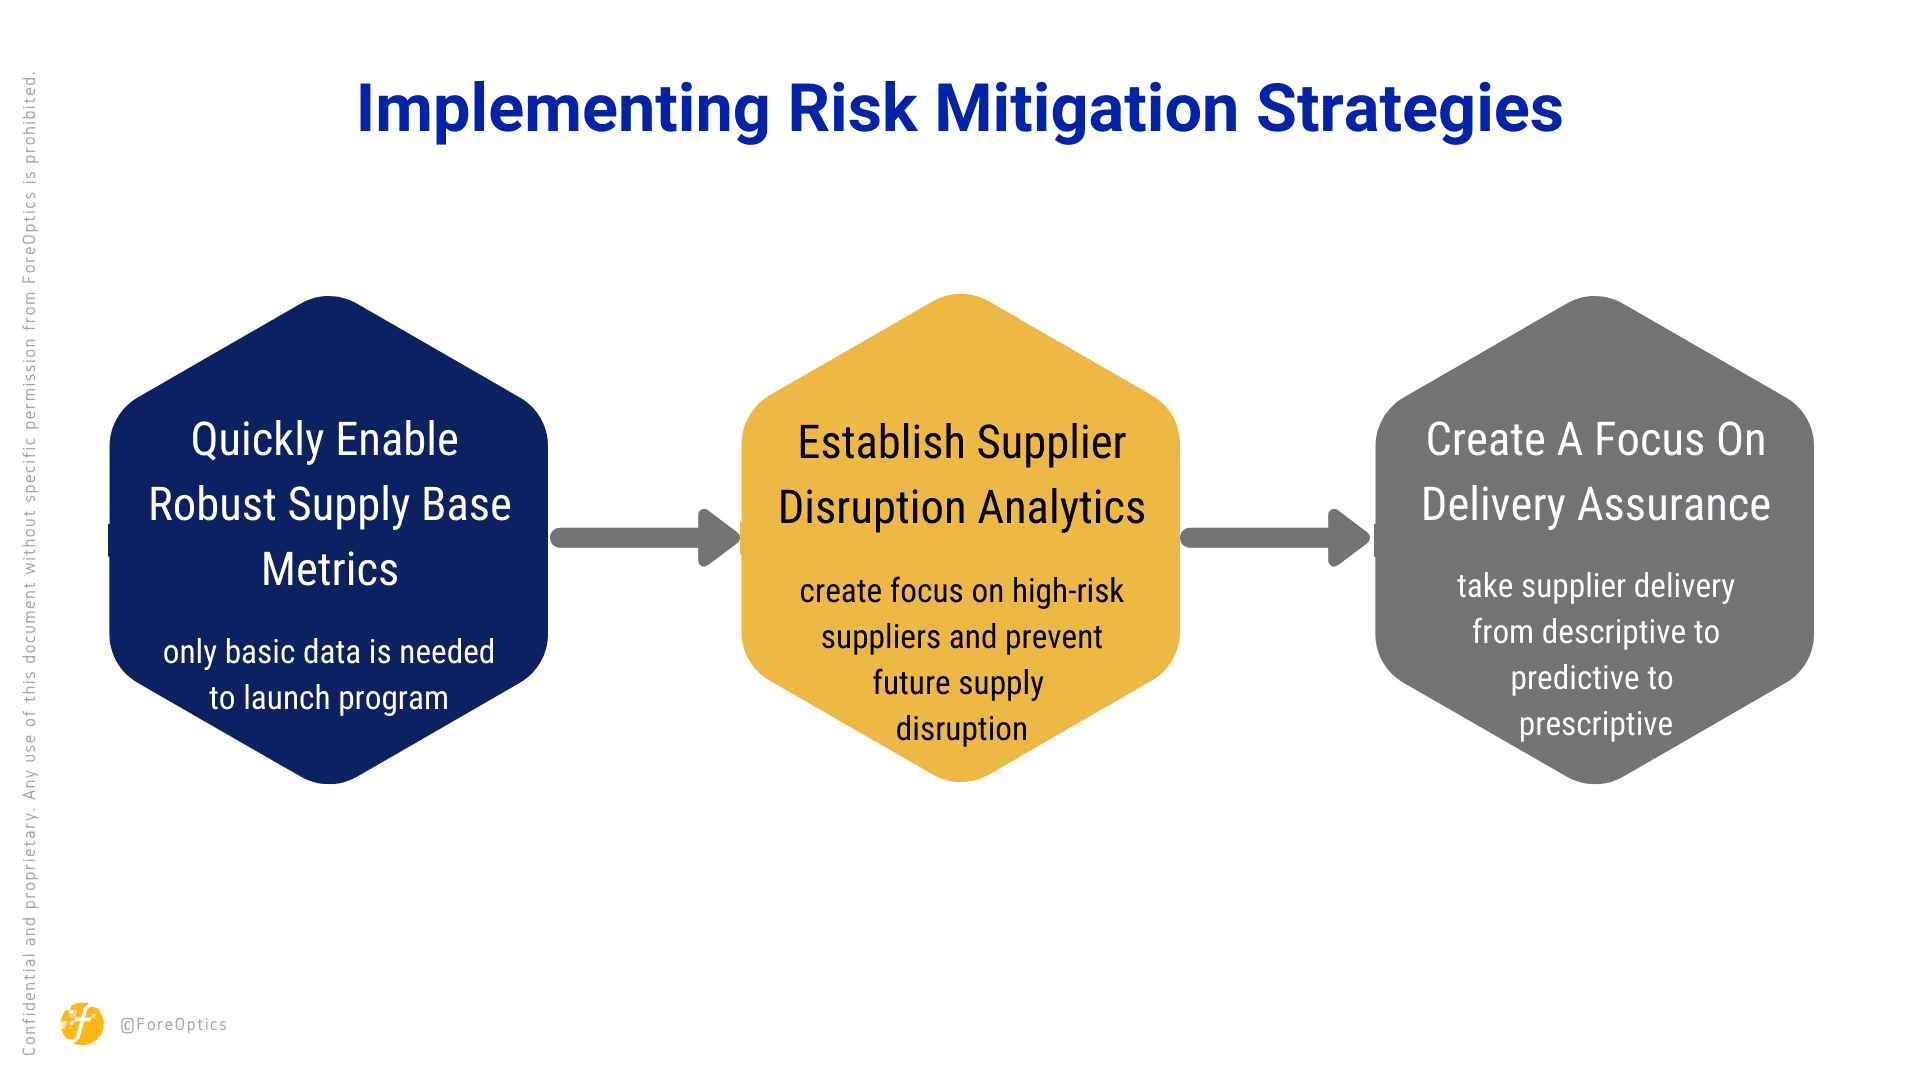 ForeOptics - Implementing Risk Mitigation Strategies - Establish Disruption Analytics, Create a focus on delivery assurance, Establishing a more robust supply base can happen quickly